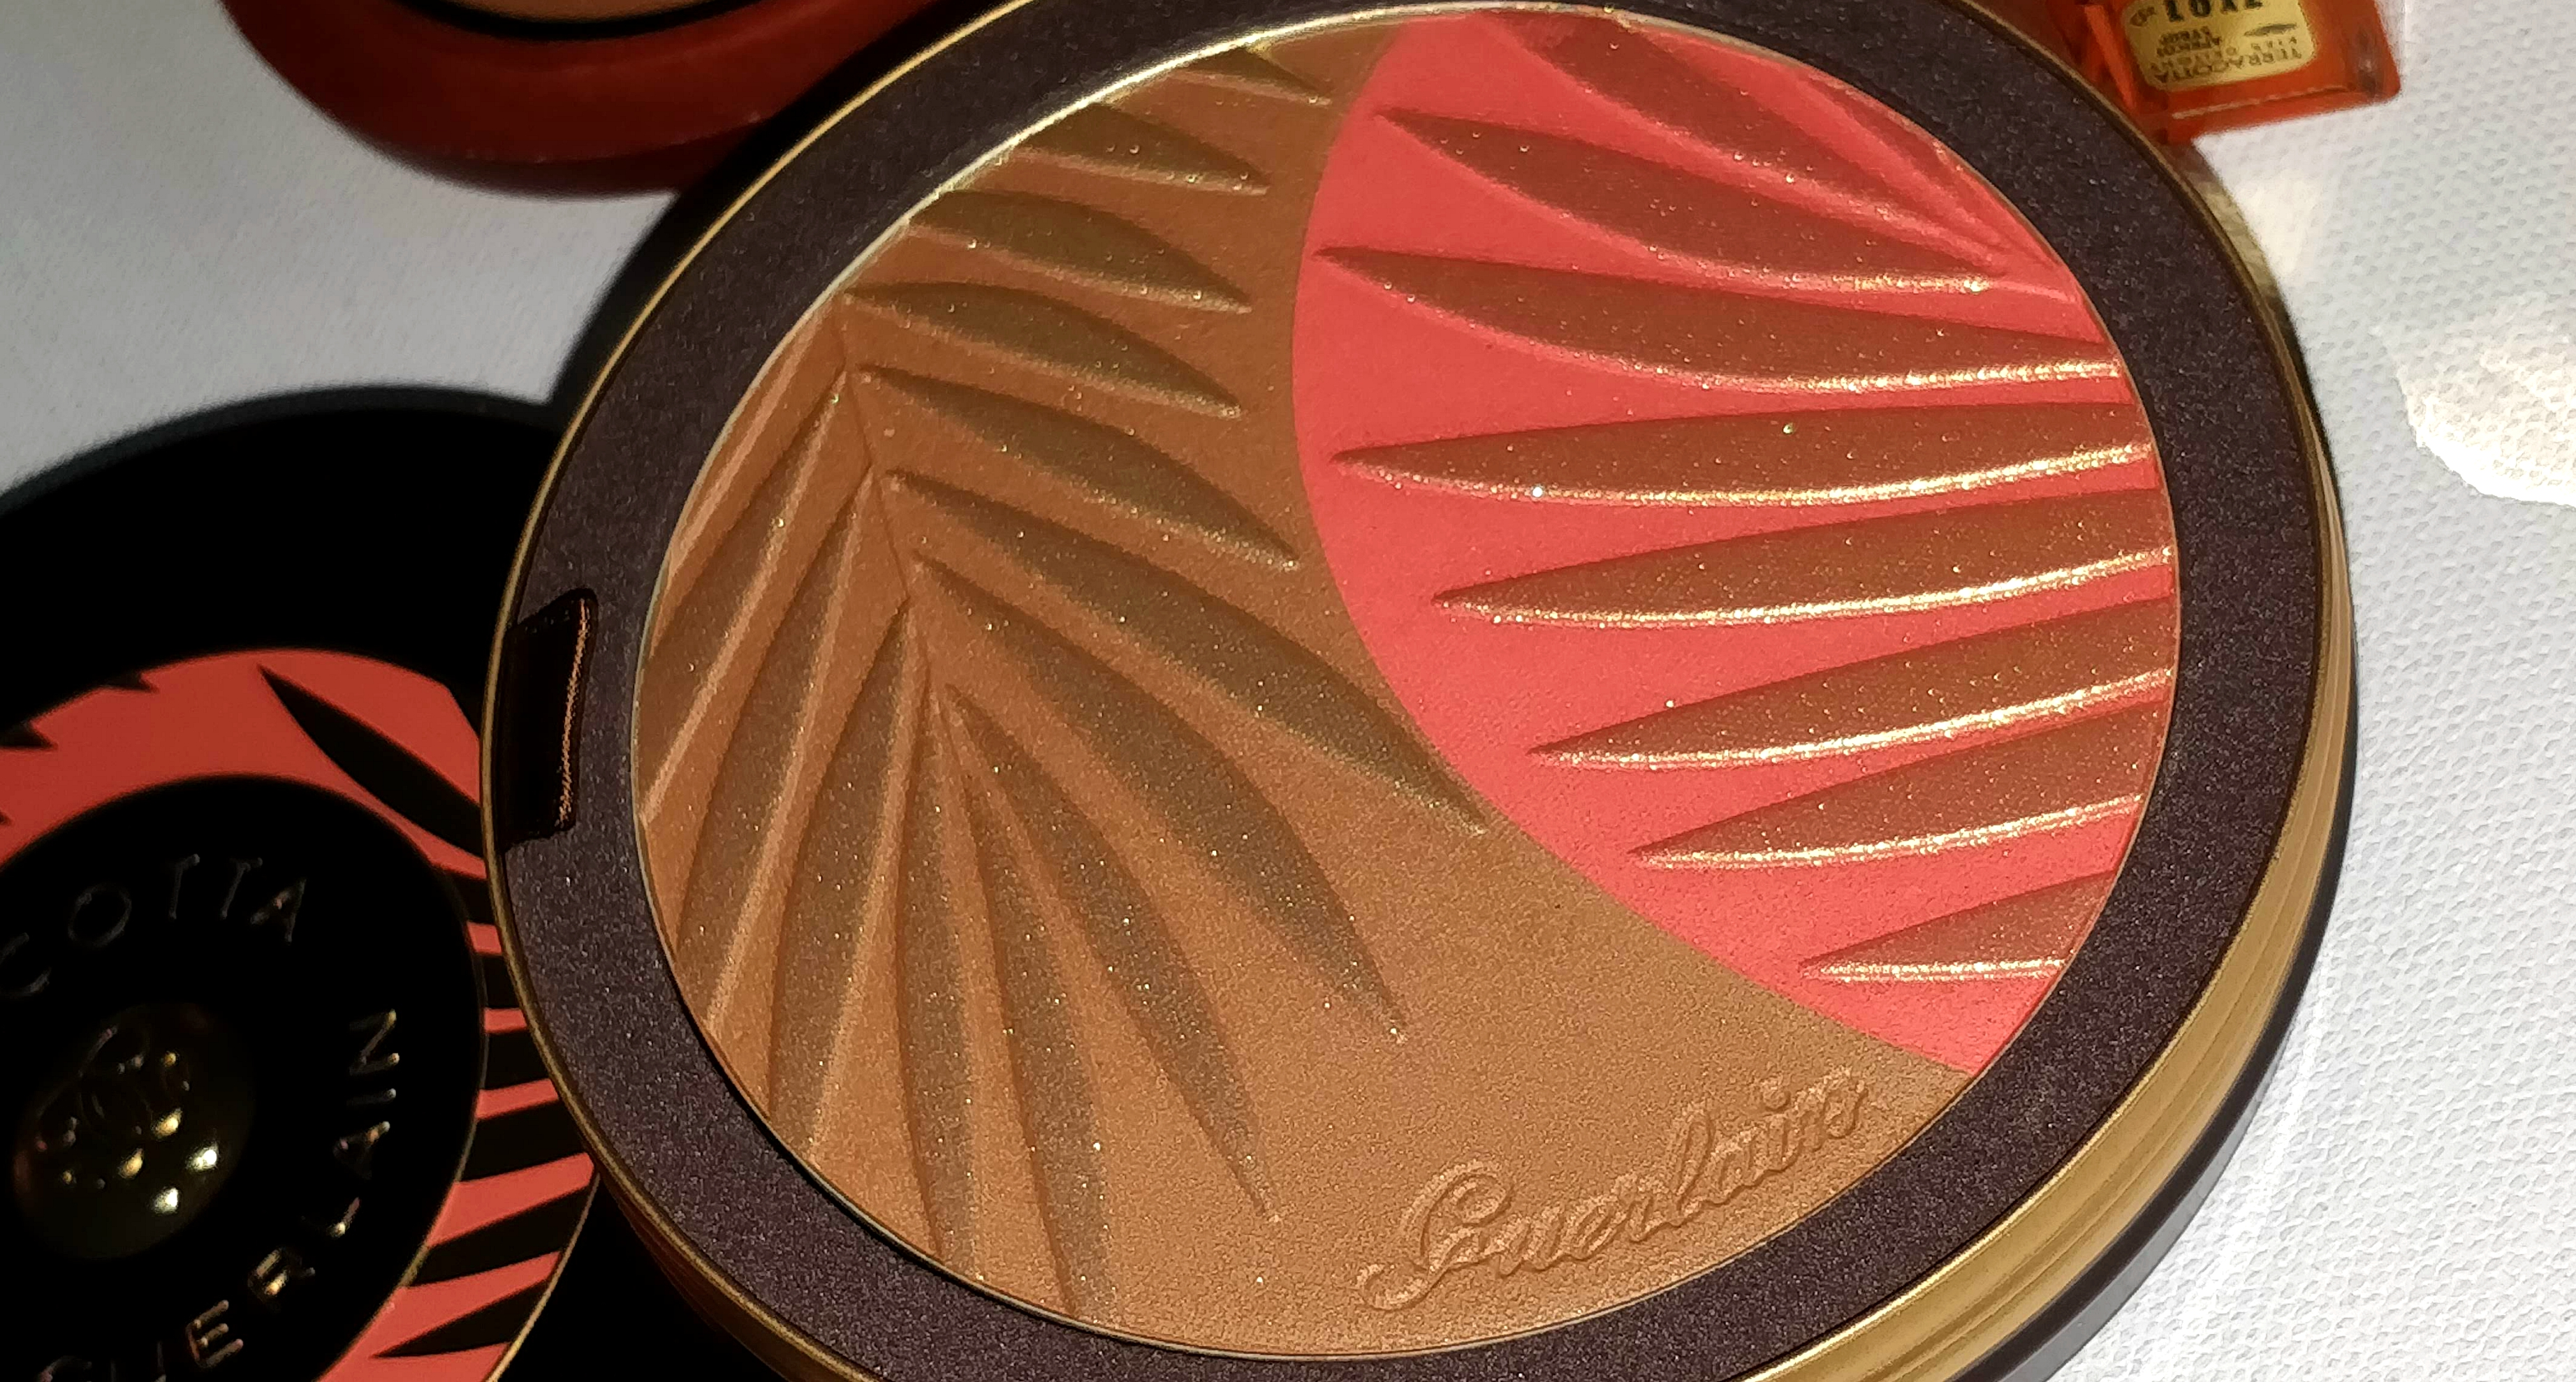 guerlain terracotta sous les palmiers bronzing and blush powder, terracotta sous les palmiers bronzing and blush powder spf 15, guerlain terracotta powders, buy guerlain terracotta sous les palmiers bronzing and blush powder, buy guerlain terracotta sous les palmiers bronzing and blush powder usa, buy guerlain terracotta sous les palmiers bronzing and blush powder uk, buy guerlain bronzers, guerlain blush, terracotta bronzing and blush powder, buy guerlain terracotta sous les palmiers bronzing and blush powder, guerlain-terracotta-sous-les-palmiers-bronzing-powder-blush,guerlain terracotta sous les palmiers review,guerlain sous les palmiers,guerlain terracotta light bronzing powder, guerlain terracotta bronzer,guerlain terracotta light healthy glow powder,terracotta powder,guerlain bronzer 09,guerlain bronzer 2018,guerlain bronzer 03, guerlain luxury makeup, luxury makeup products, guerlain luxury products, buy guerlain luxury bronzers review